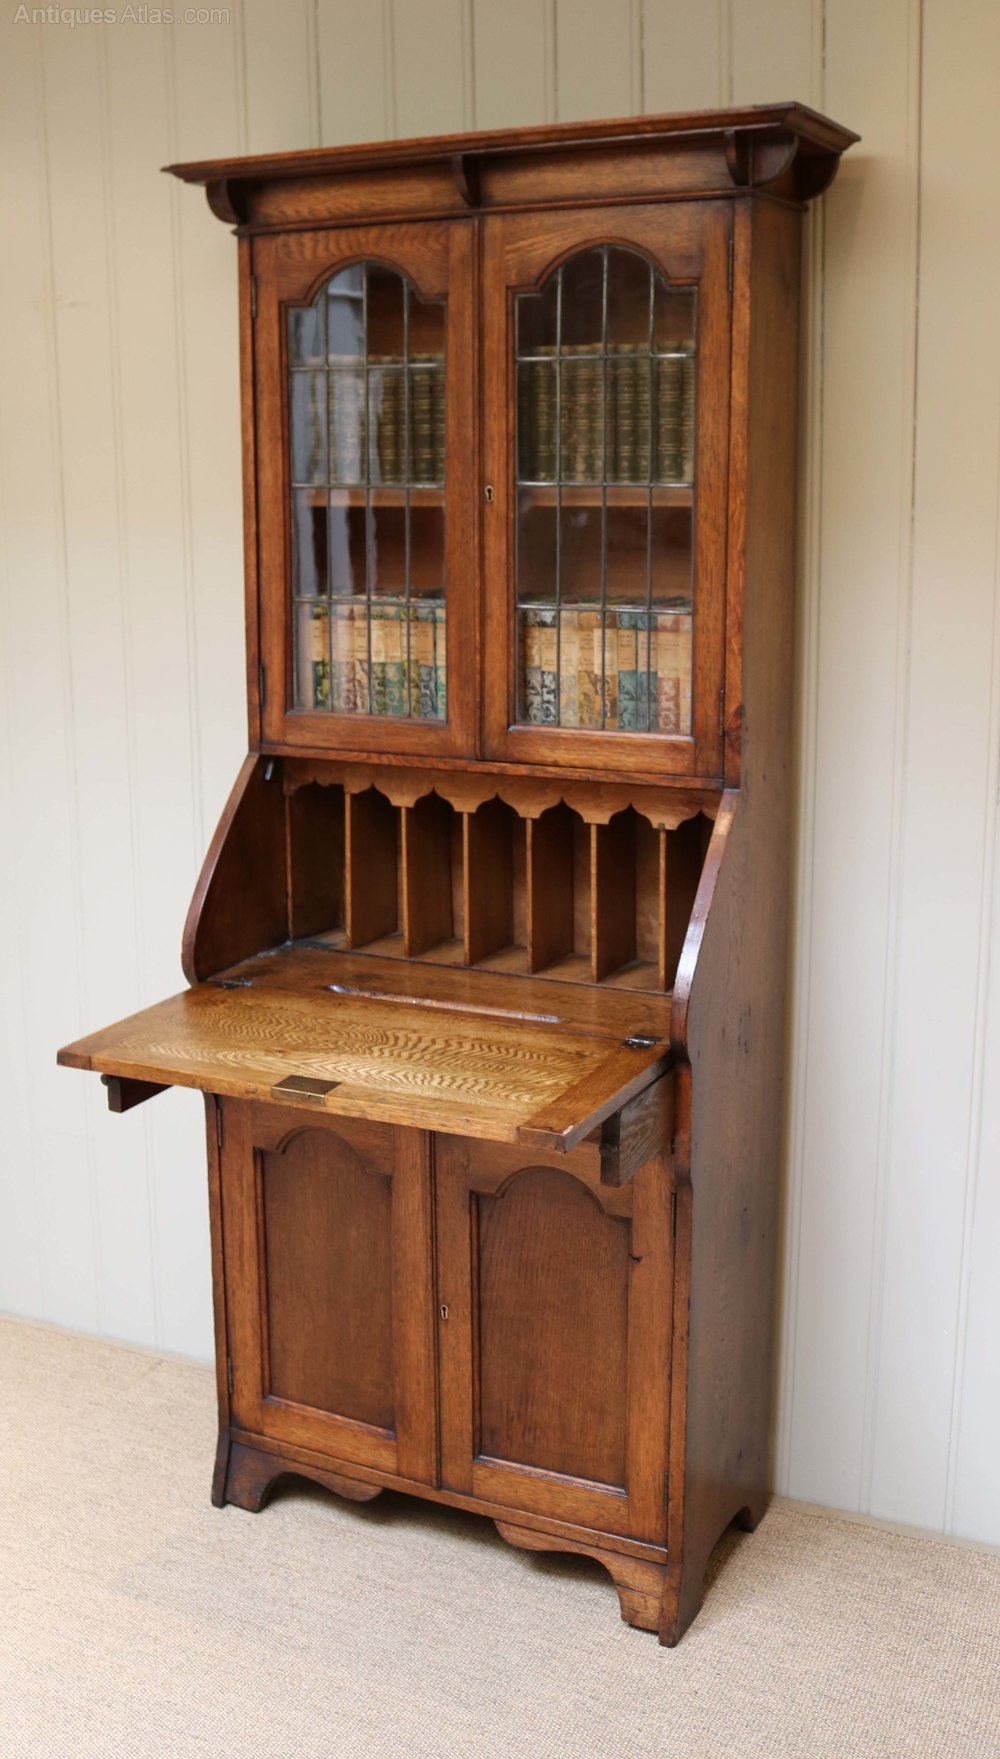 Arts and crafts solid oak bureau bookcase antiques atlas for Arts and crafts bookshelf